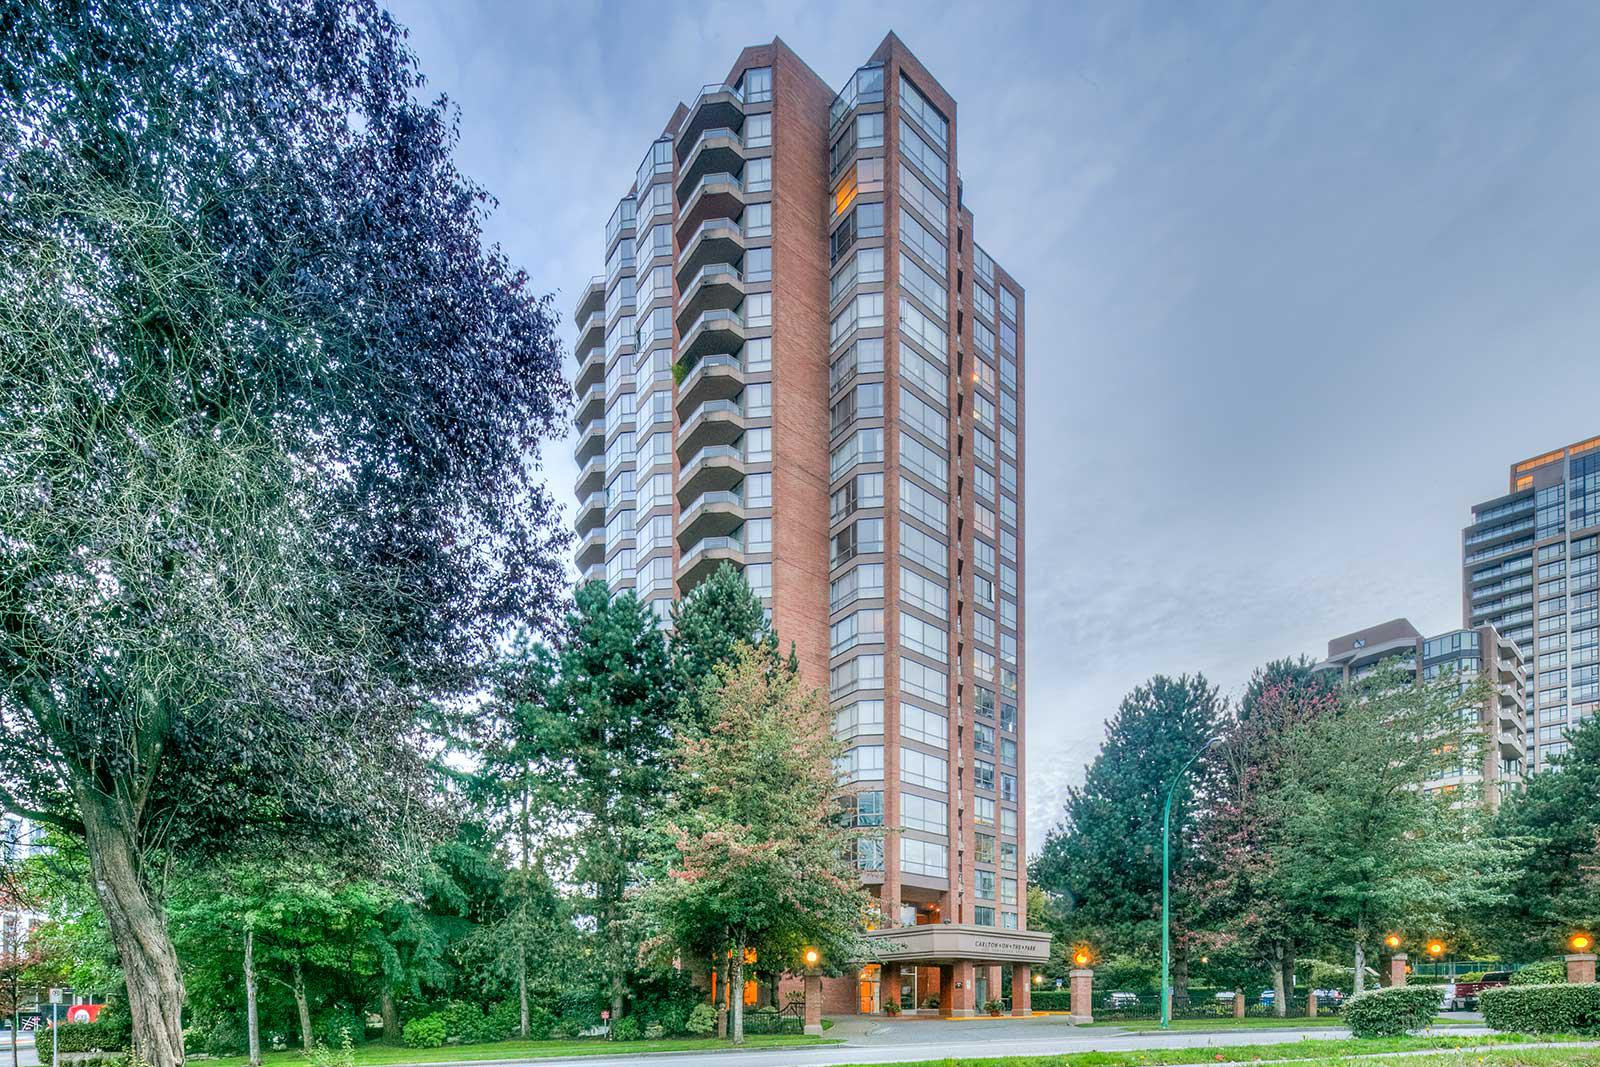 Carlton On The Park at 4350 Beresford St, Burnaby 0